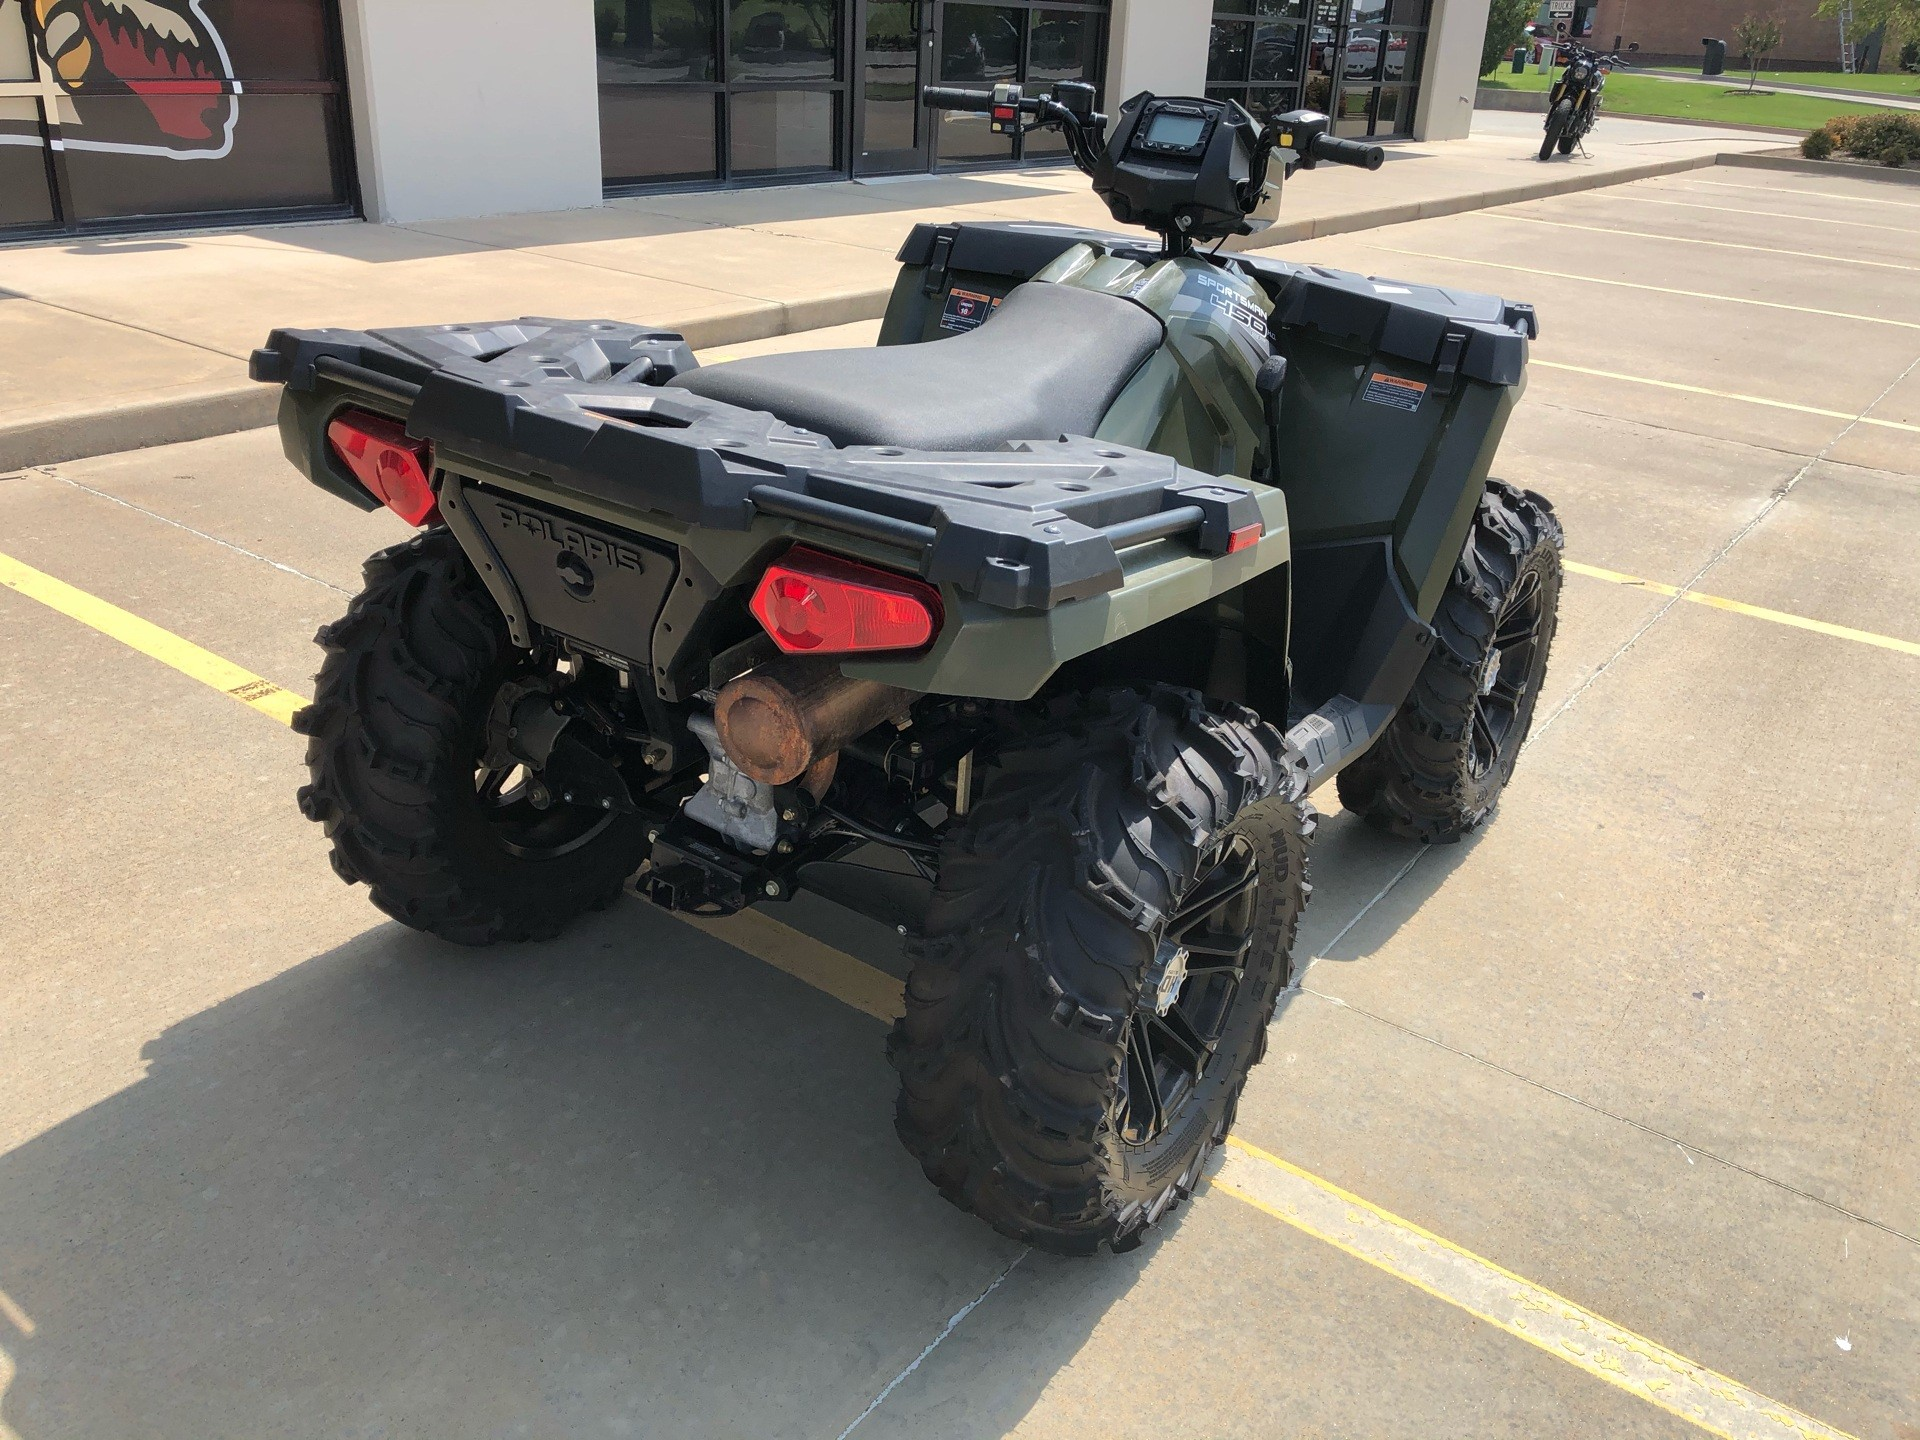 2019 Polaris Sportsman 450 H.O. in Norman, Oklahoma - Photo 8